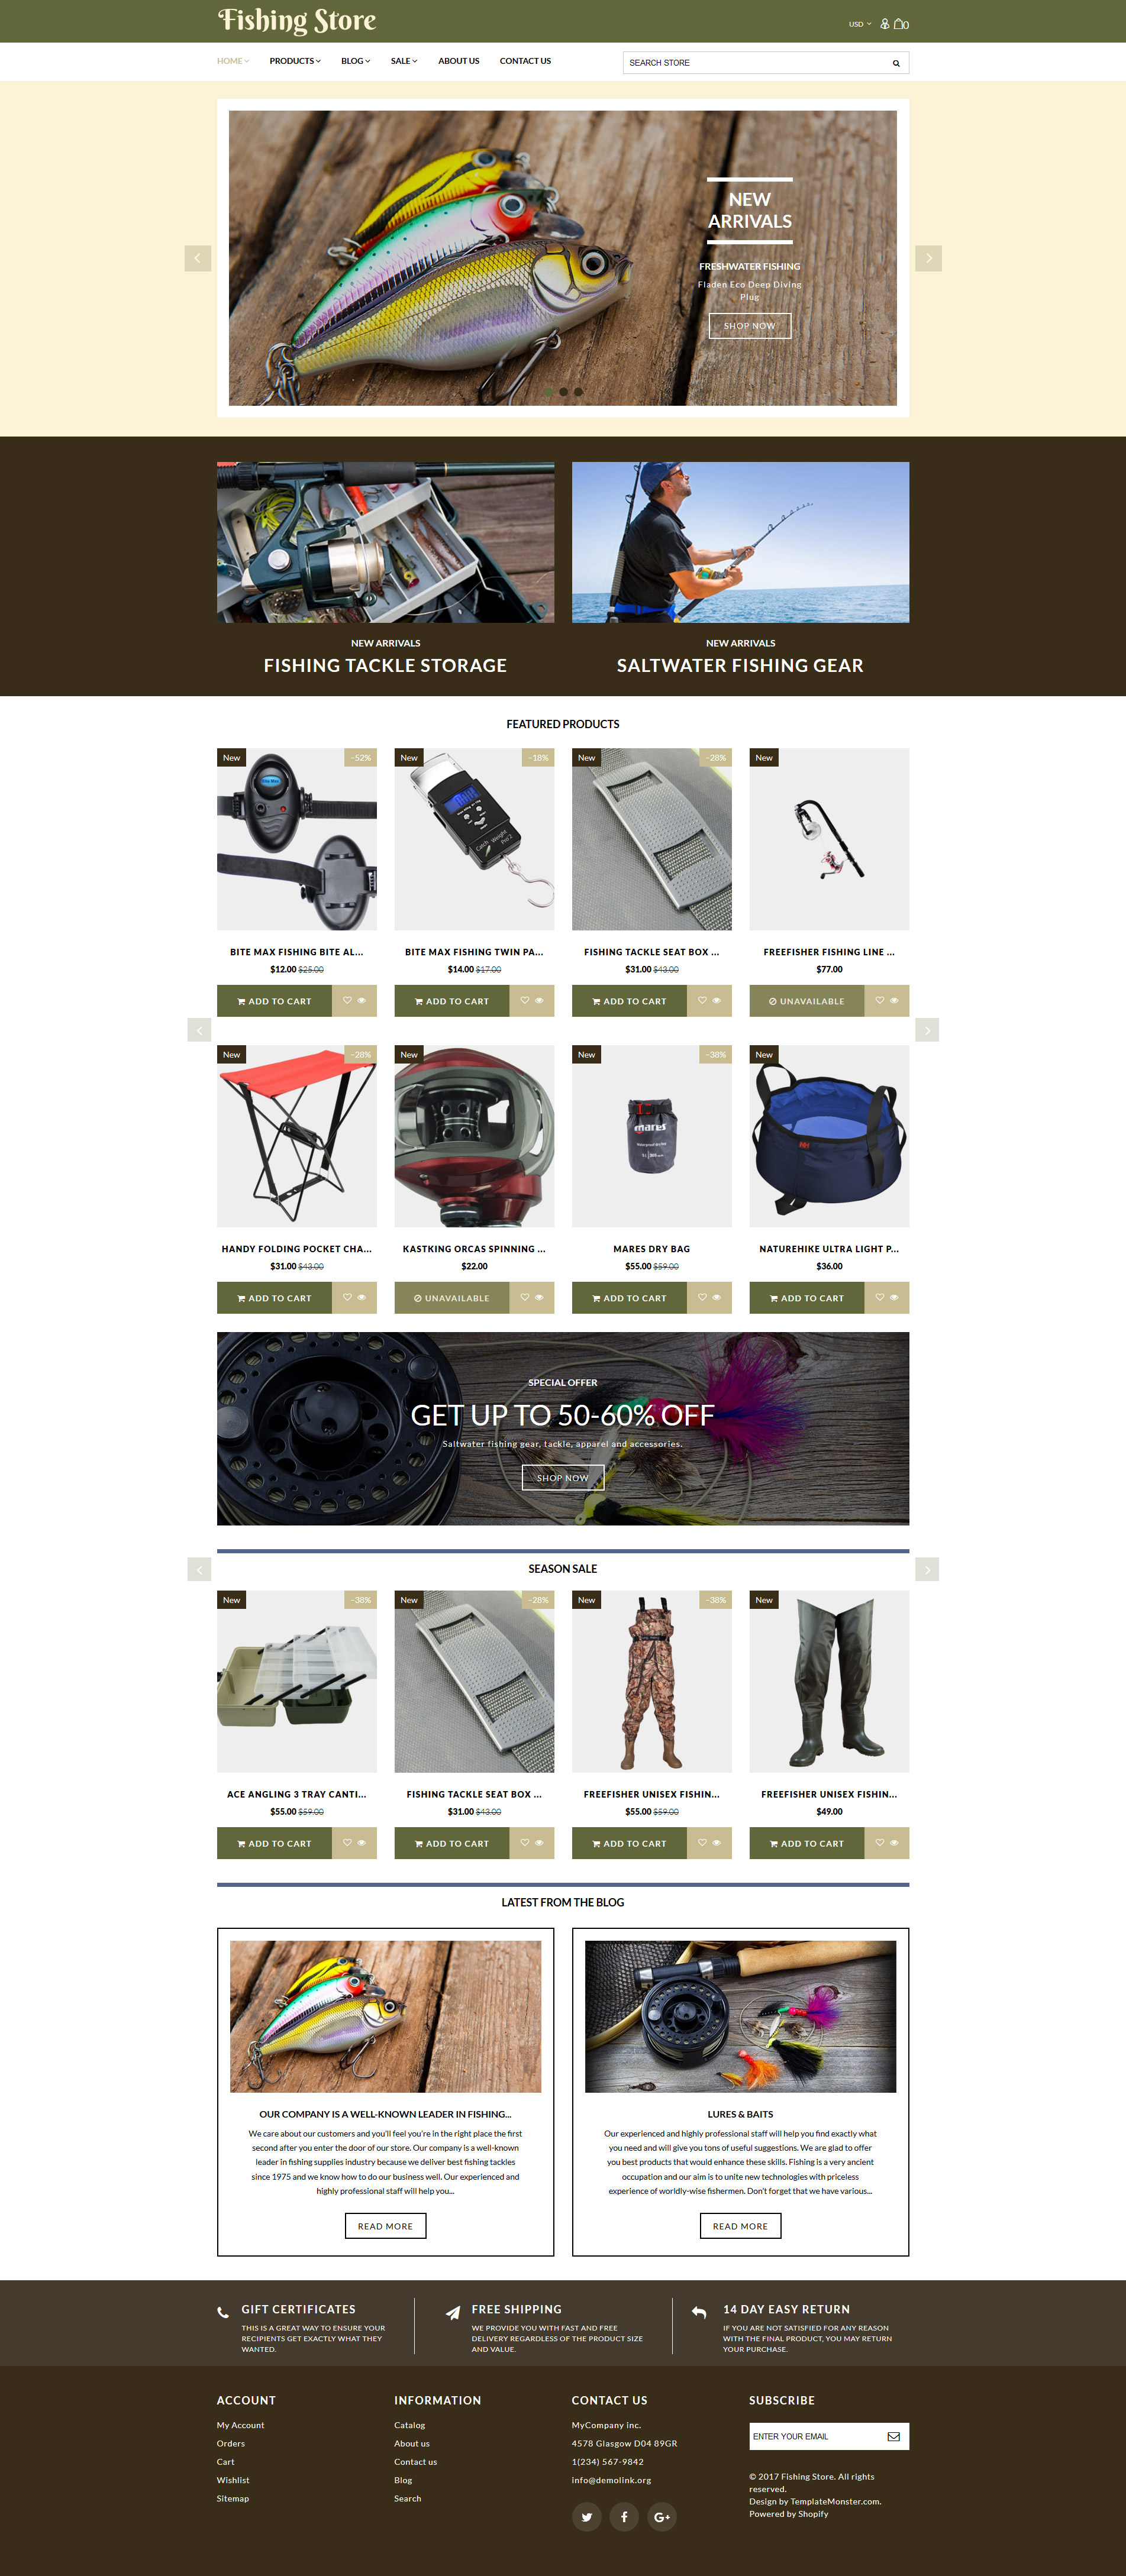 Fishing Store - Fishing Supplies & Equipment Shopify Theme - screenshot